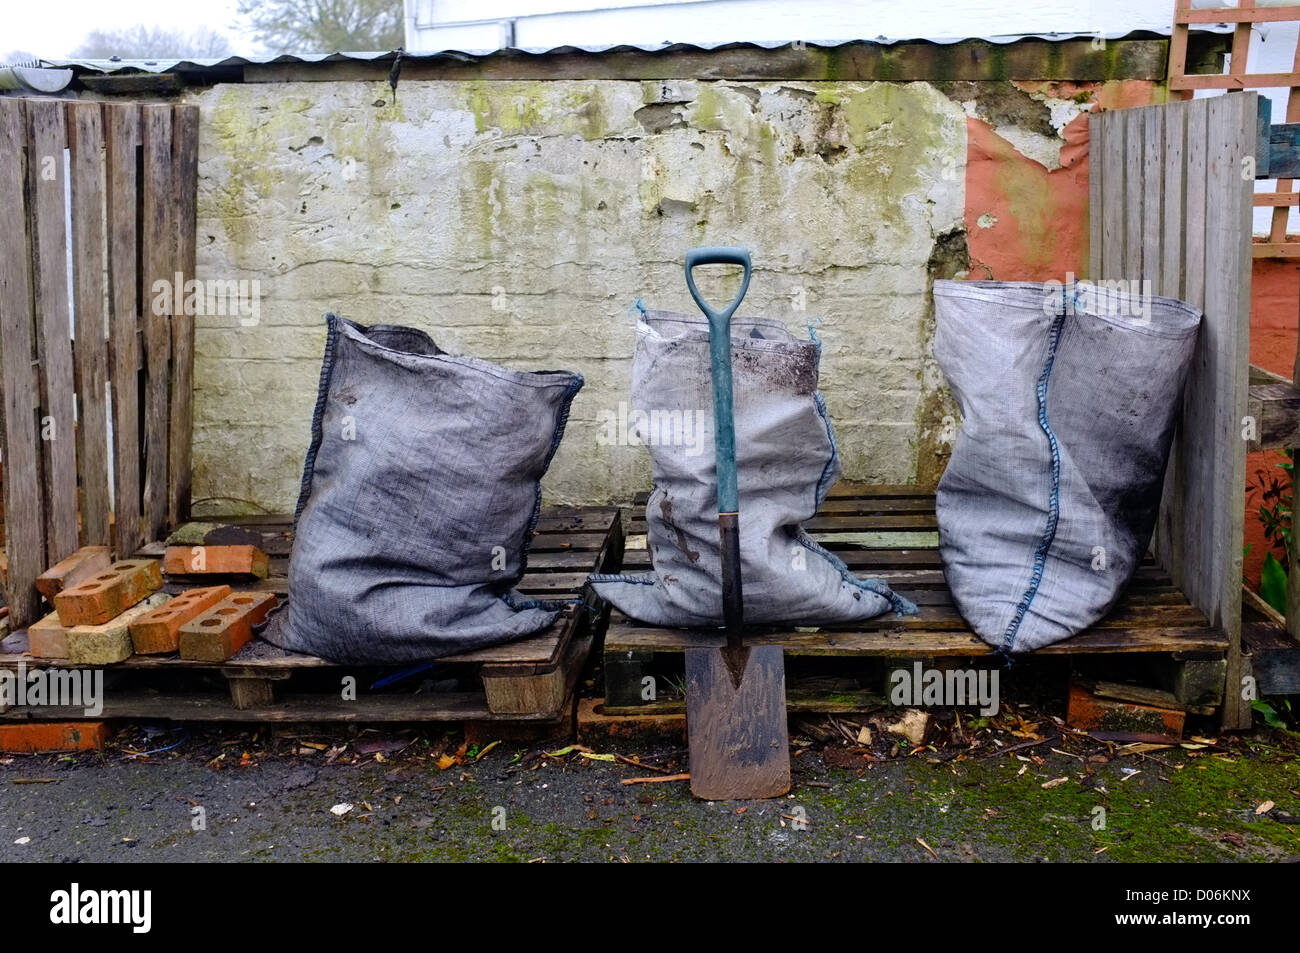 Three sacks of coal just delivered onto wooden pallets outside a house in Cornwall, UK - Stock Image